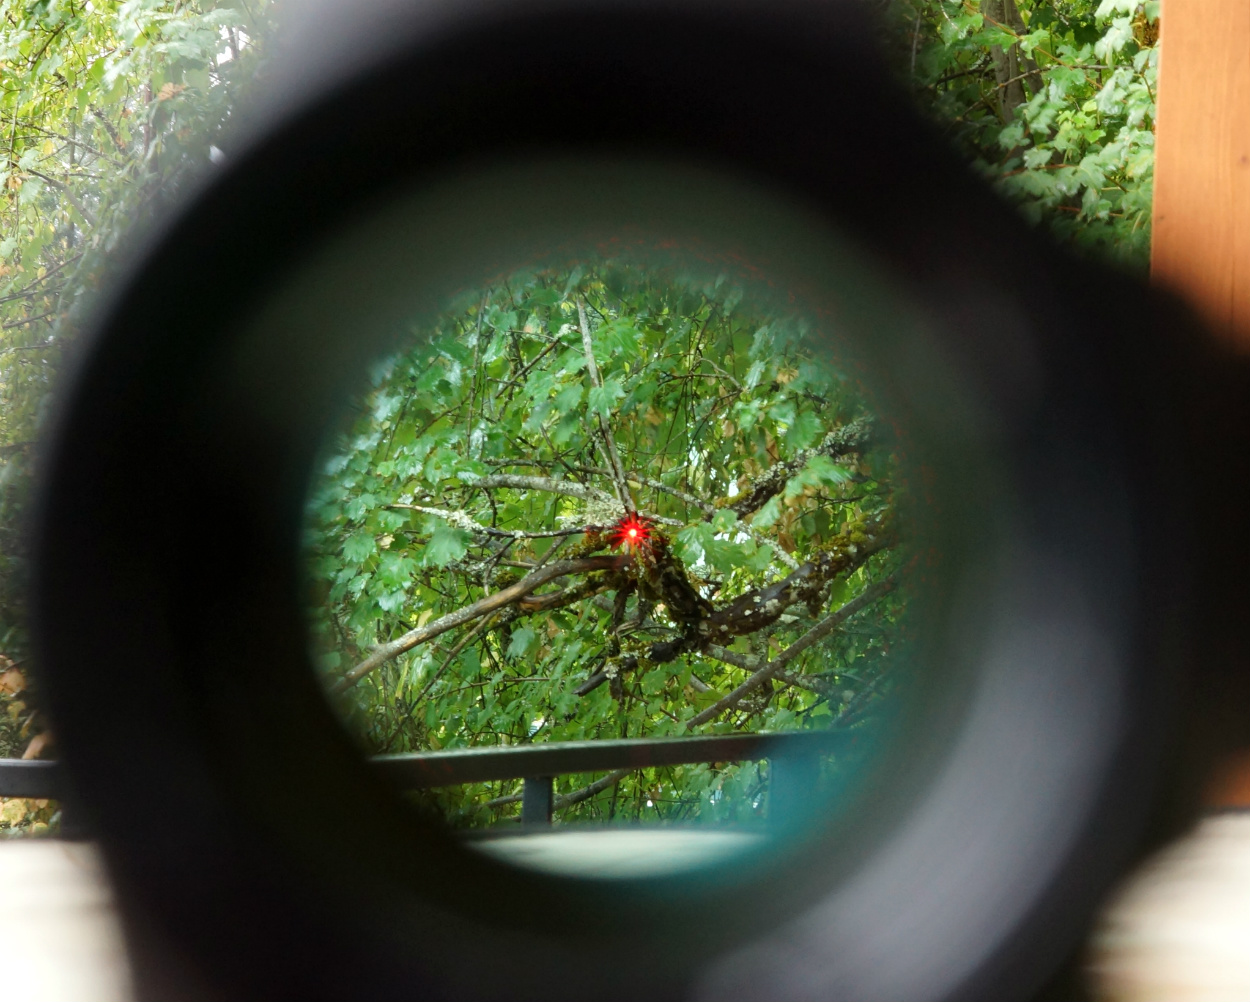 image showing a red dot on a scope